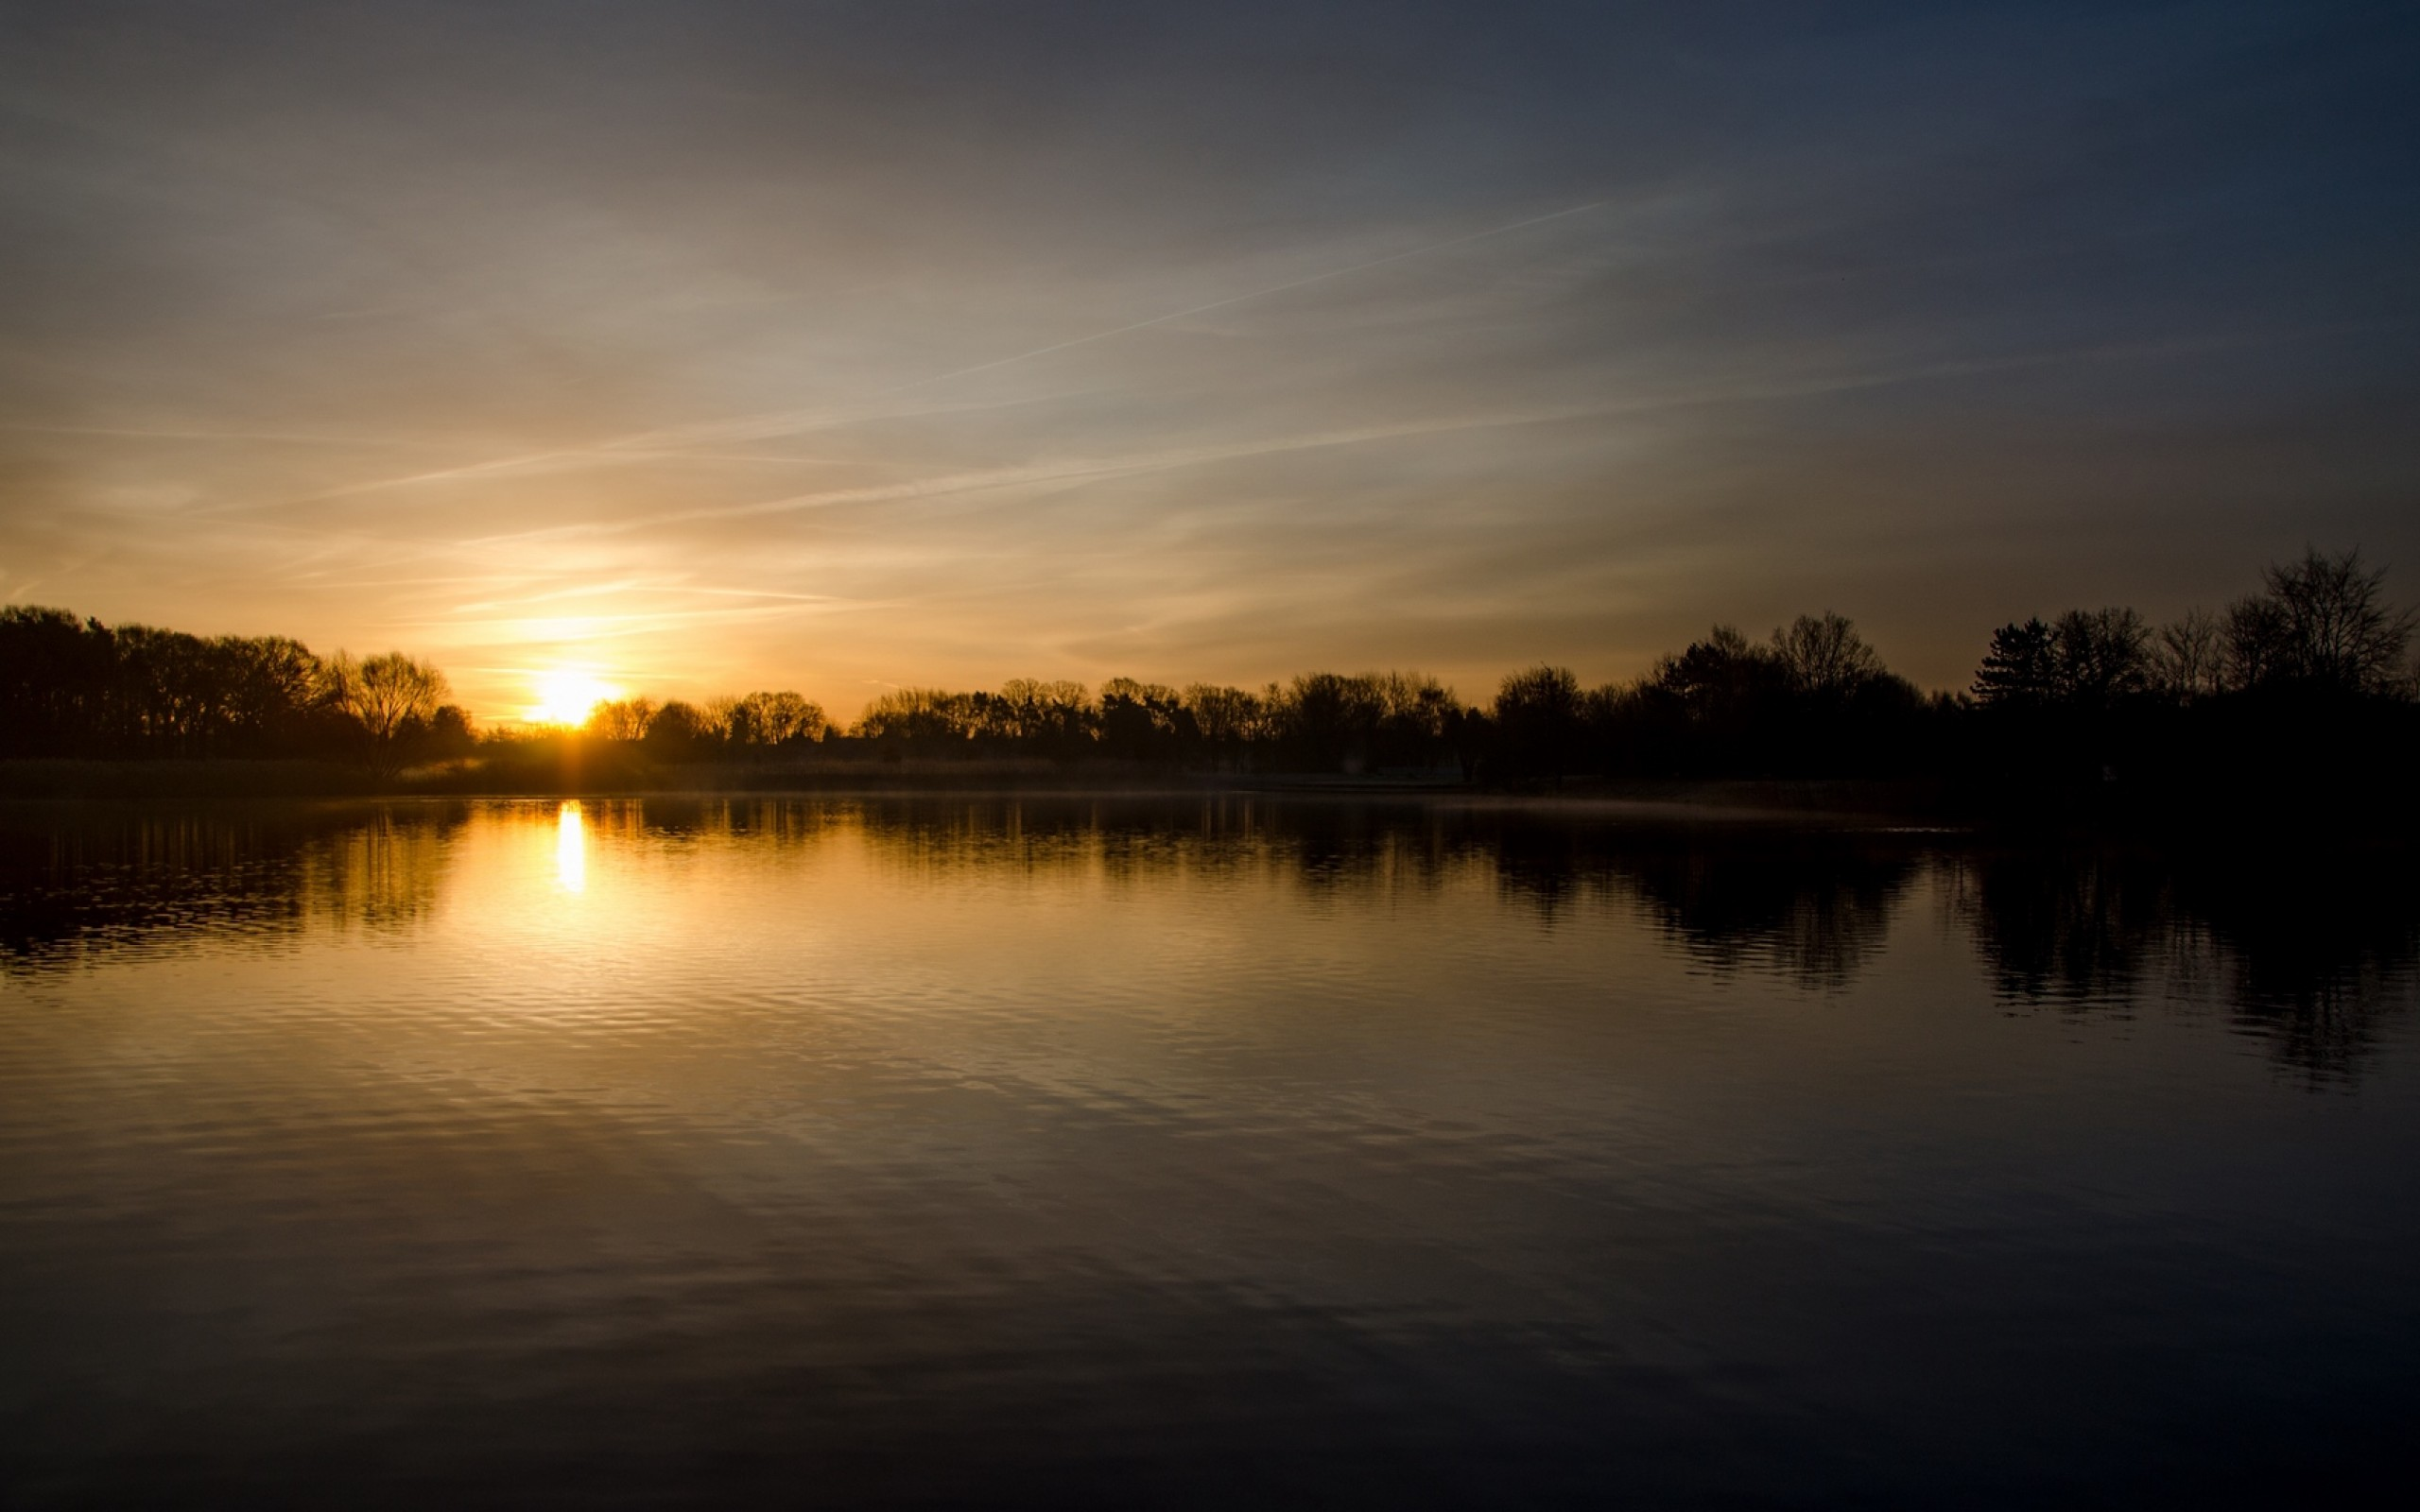 Sunset over the lake HD Wallpaper